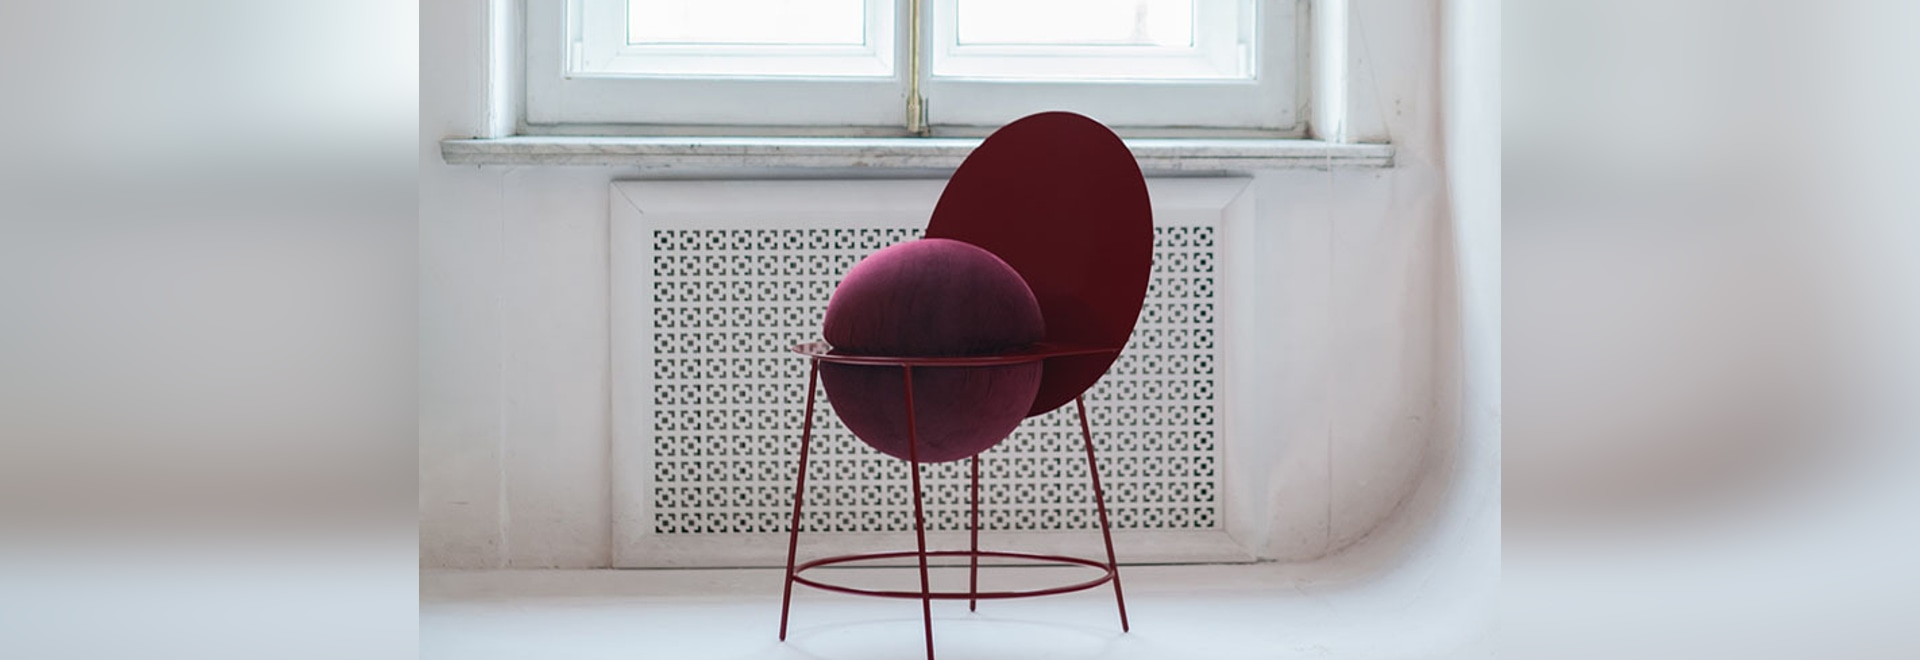 Katia Tolstykh Has Designed The PROUN Chair